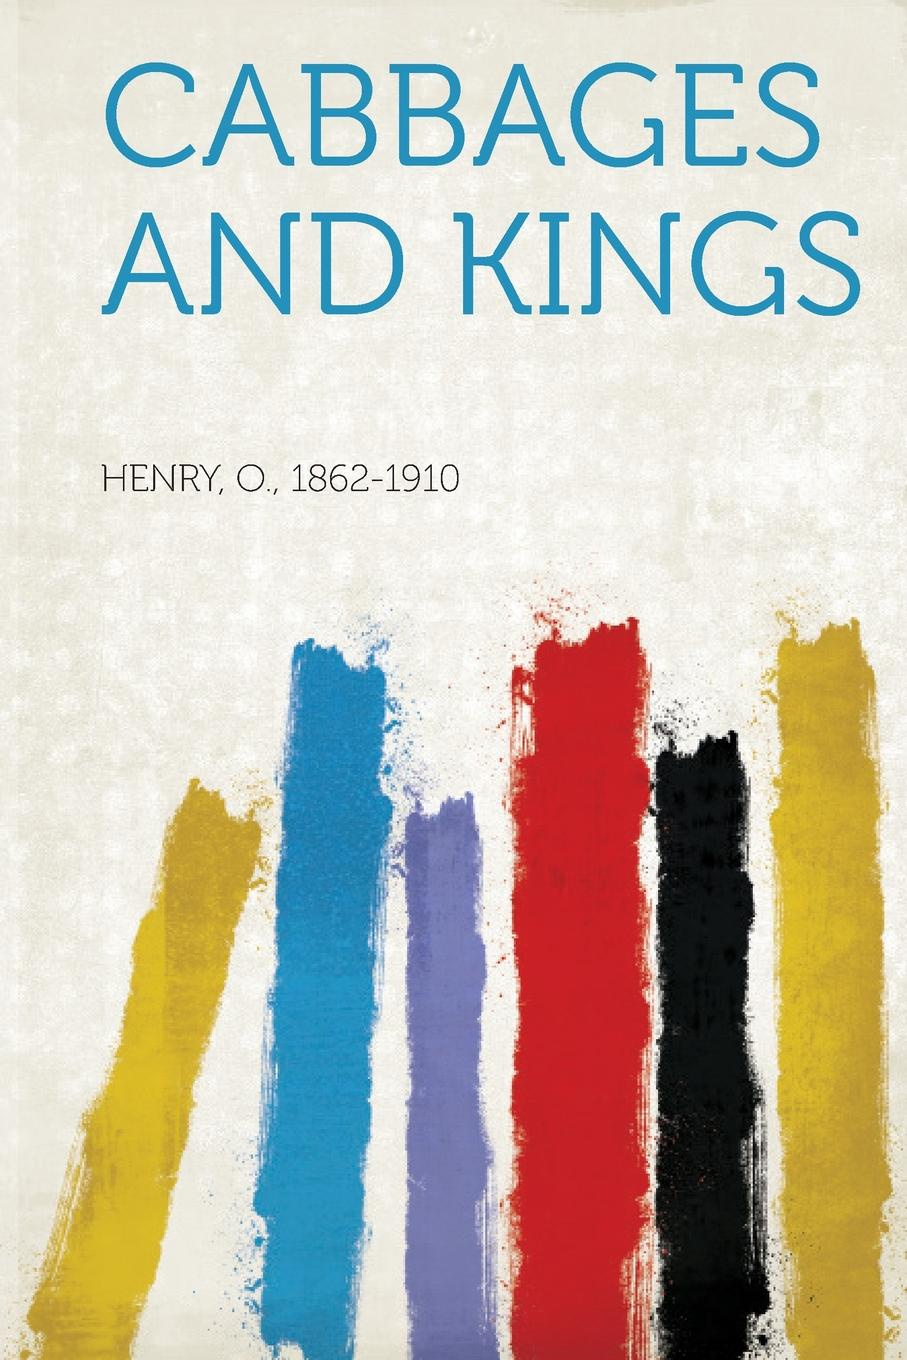 Henry O, Henry O. Cabbages and Kings henry o cabbages and kings